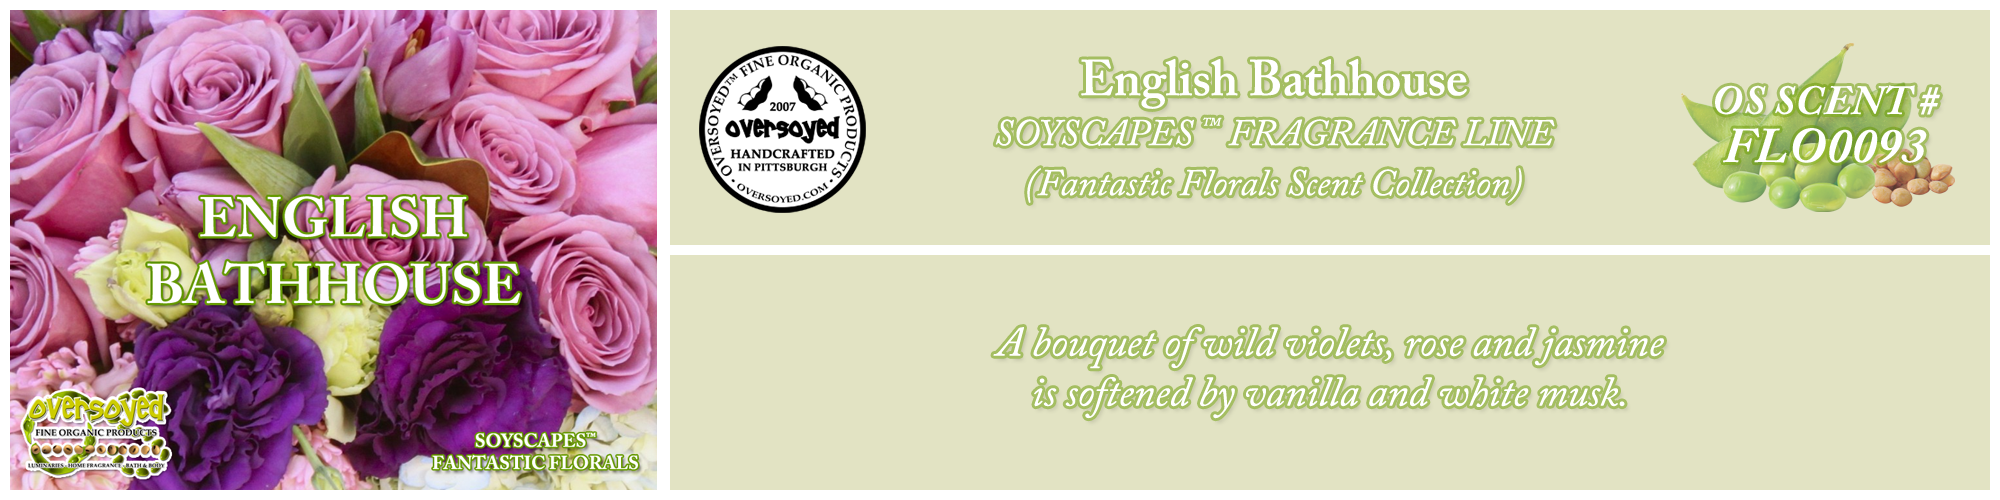 English Bathhouse Handcrafted Products Collection